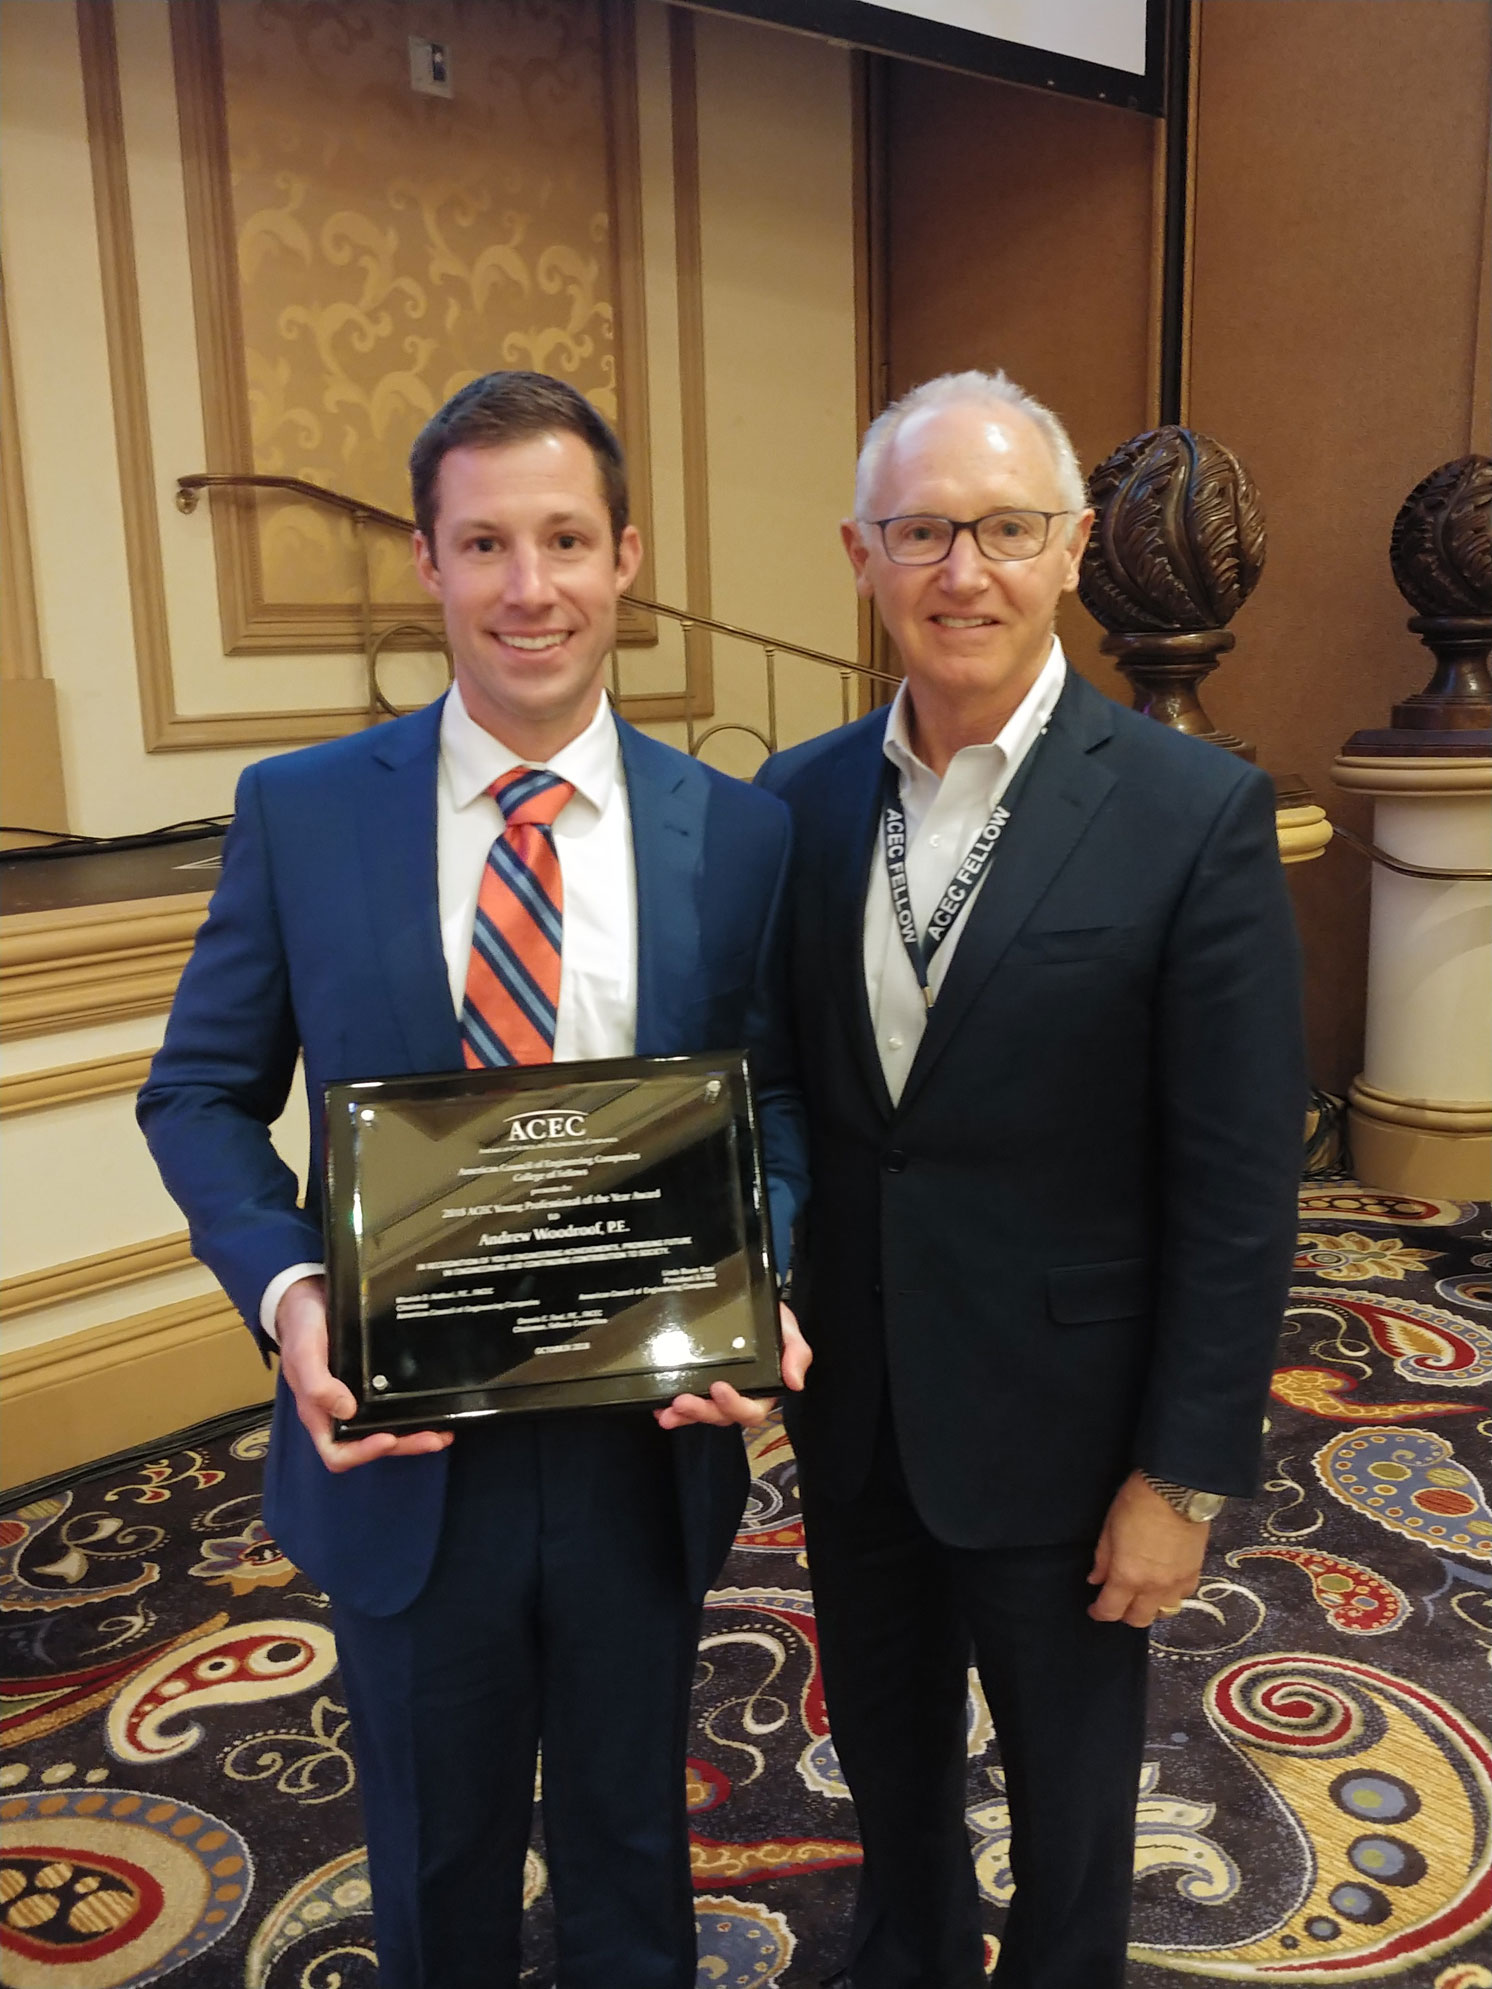 Award winner, Andrew Woodroof, with DE CEO Kurt Evans